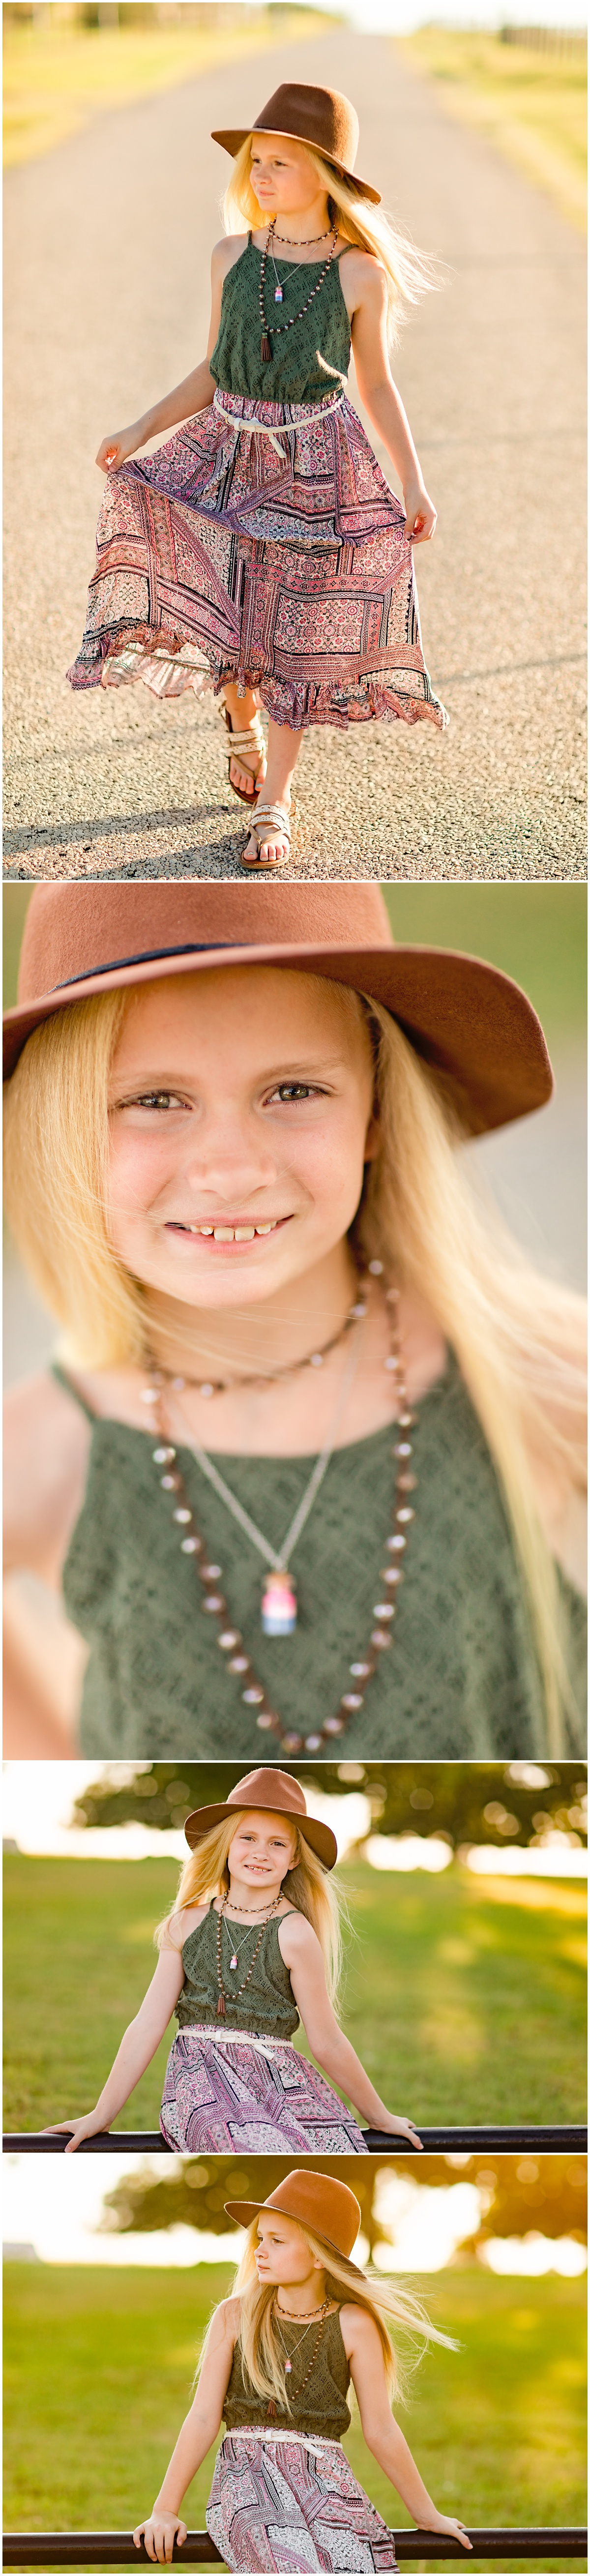 All-About-Me-Kid-Photos-San-Antonio-Hill-Country-Texas-Carly-Barton-Photography_0038.jpg